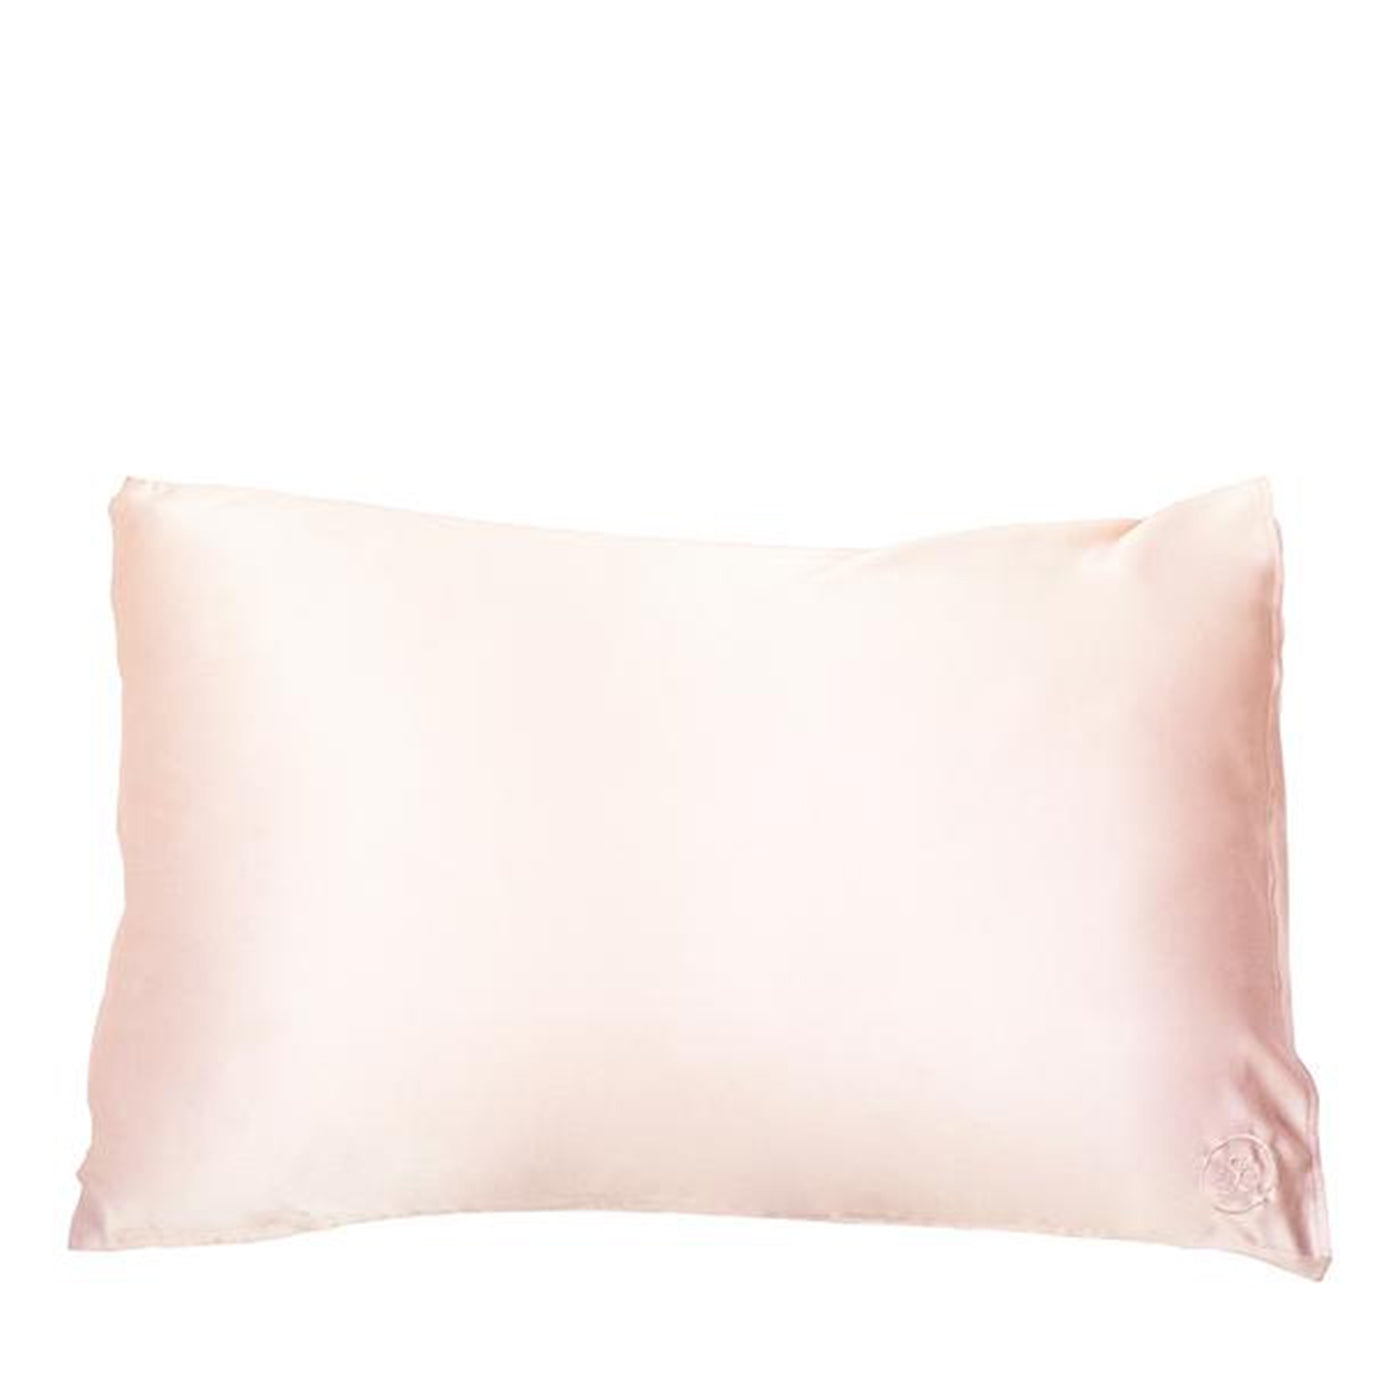 The Goodnight Co Silk Pillowcase